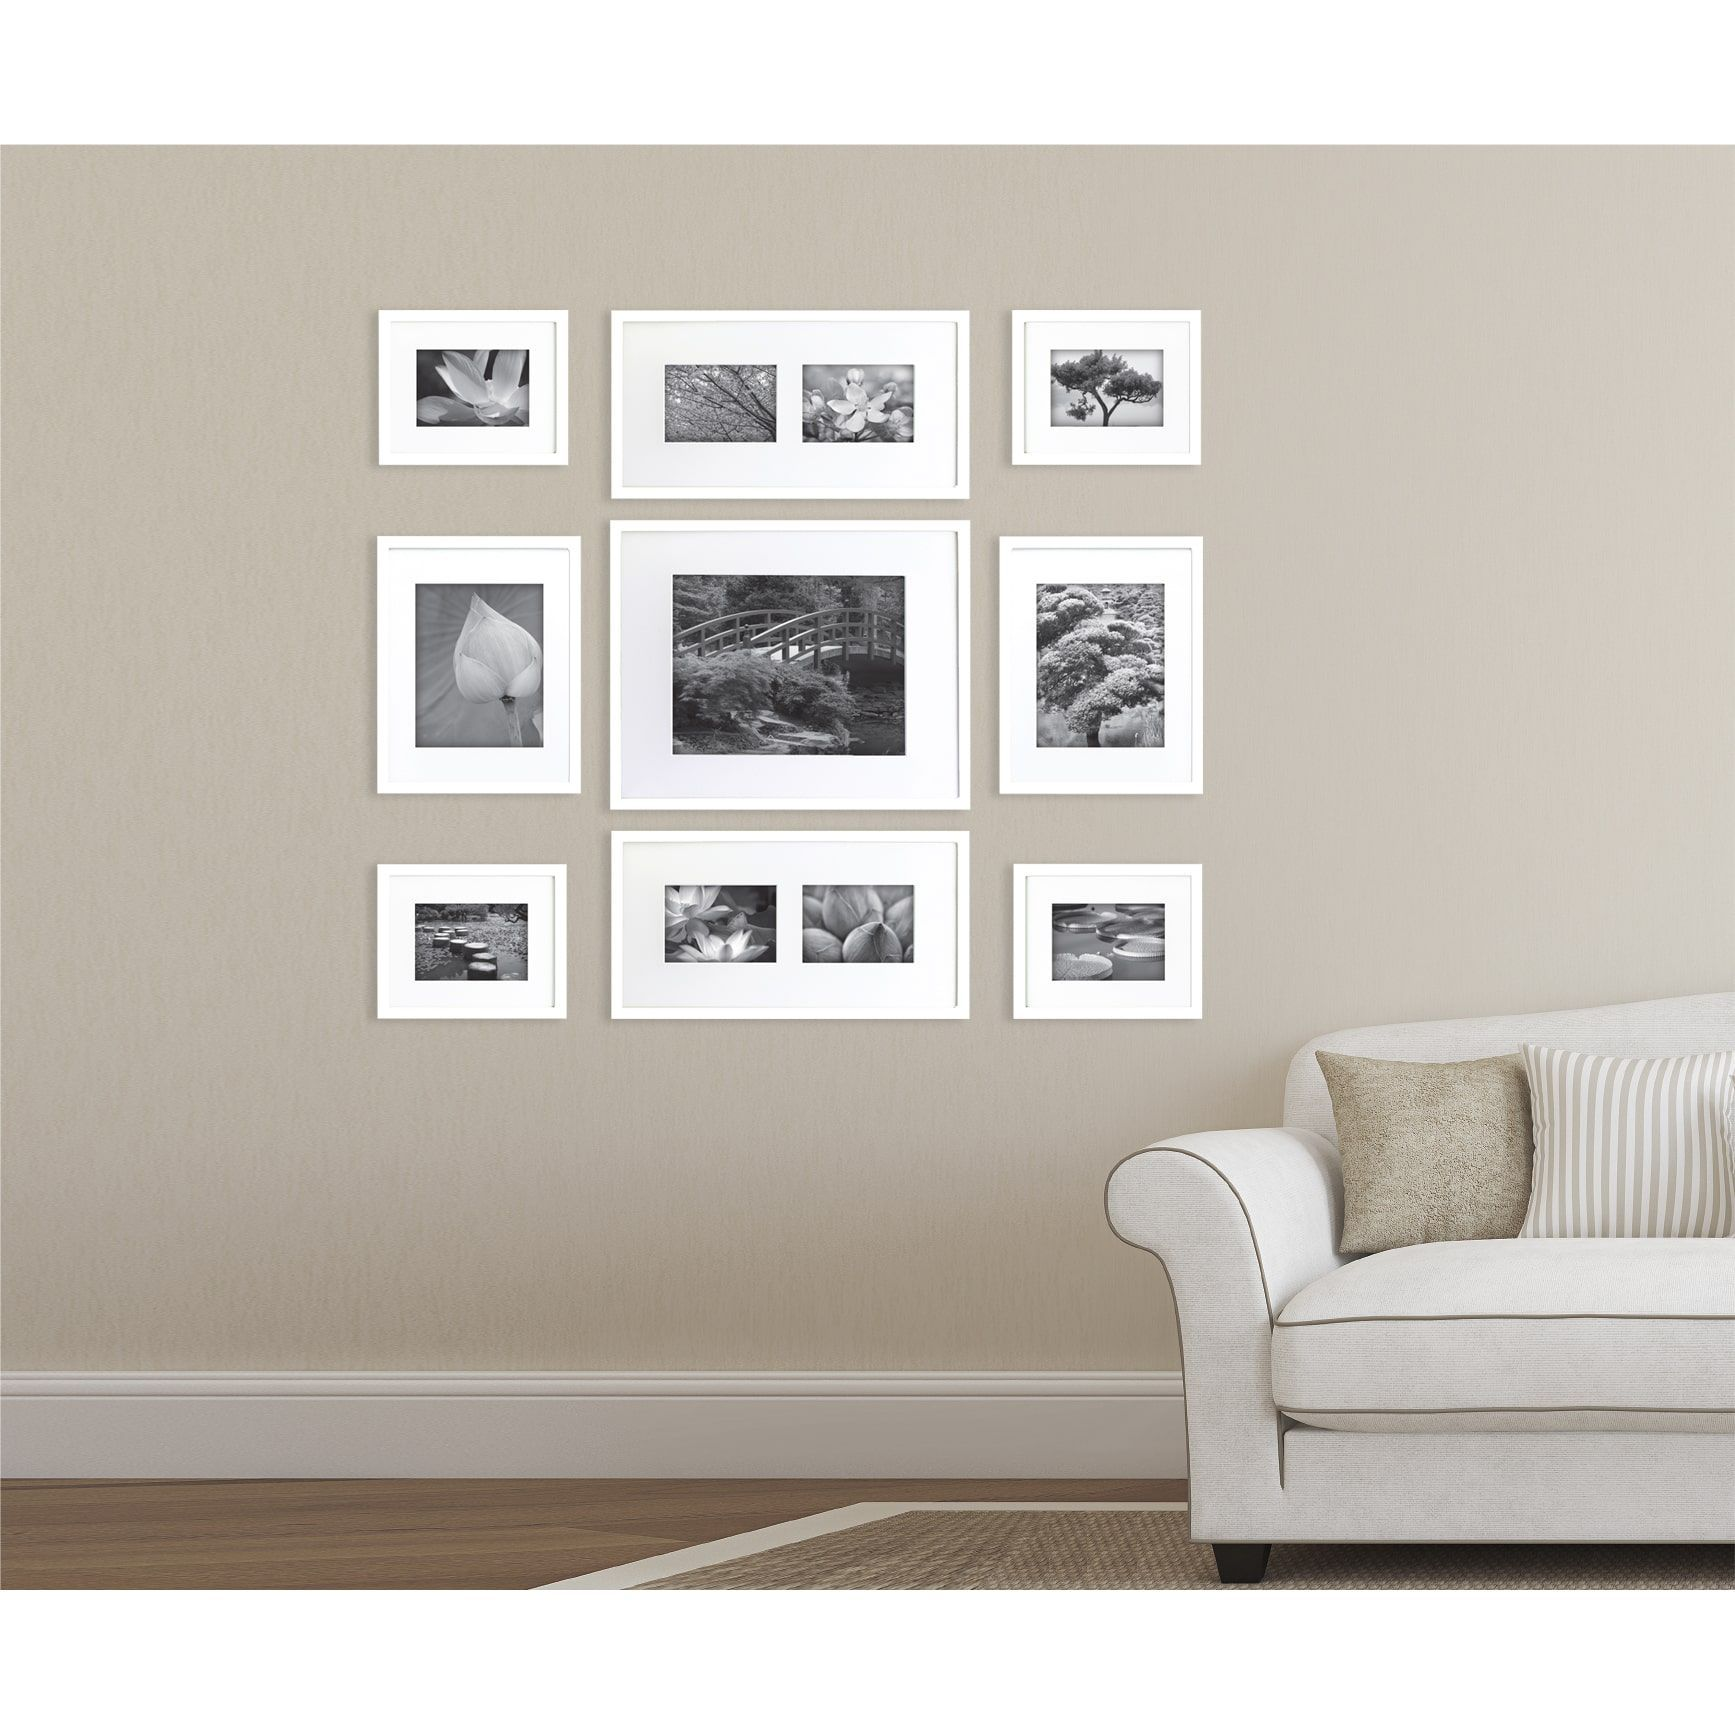 Gallery Perfect 9 Piece White Frame Kit - 16x20 (Wood) in 2018 ...